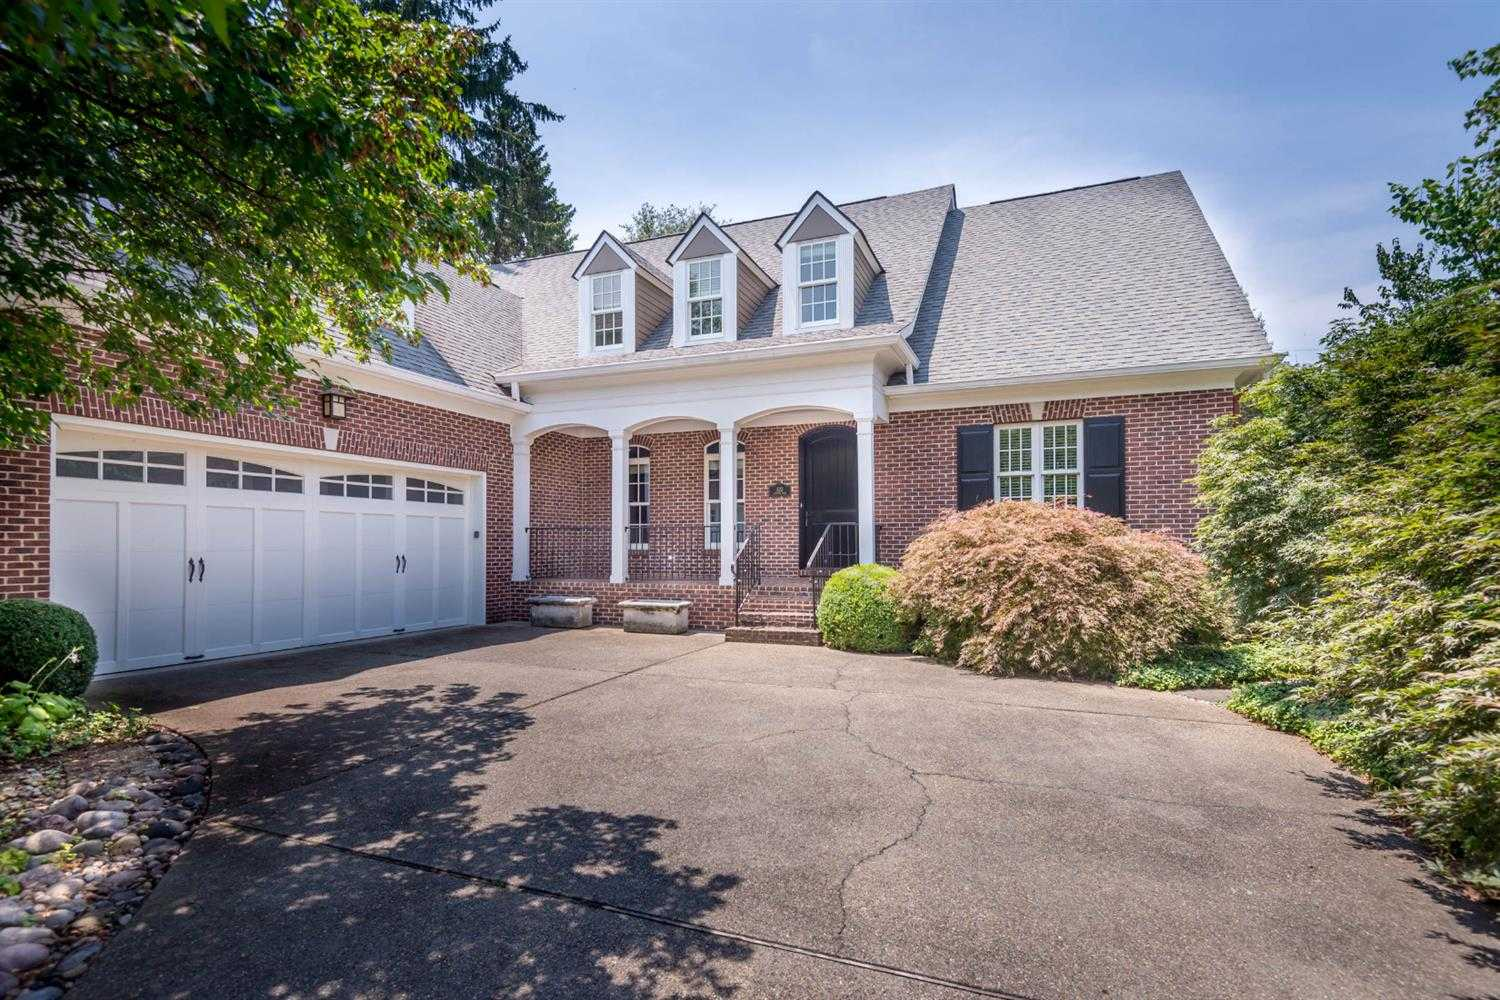 $1,325,000 - 7Br/7Ba -  for Sale in Chevy Chase, Lexington